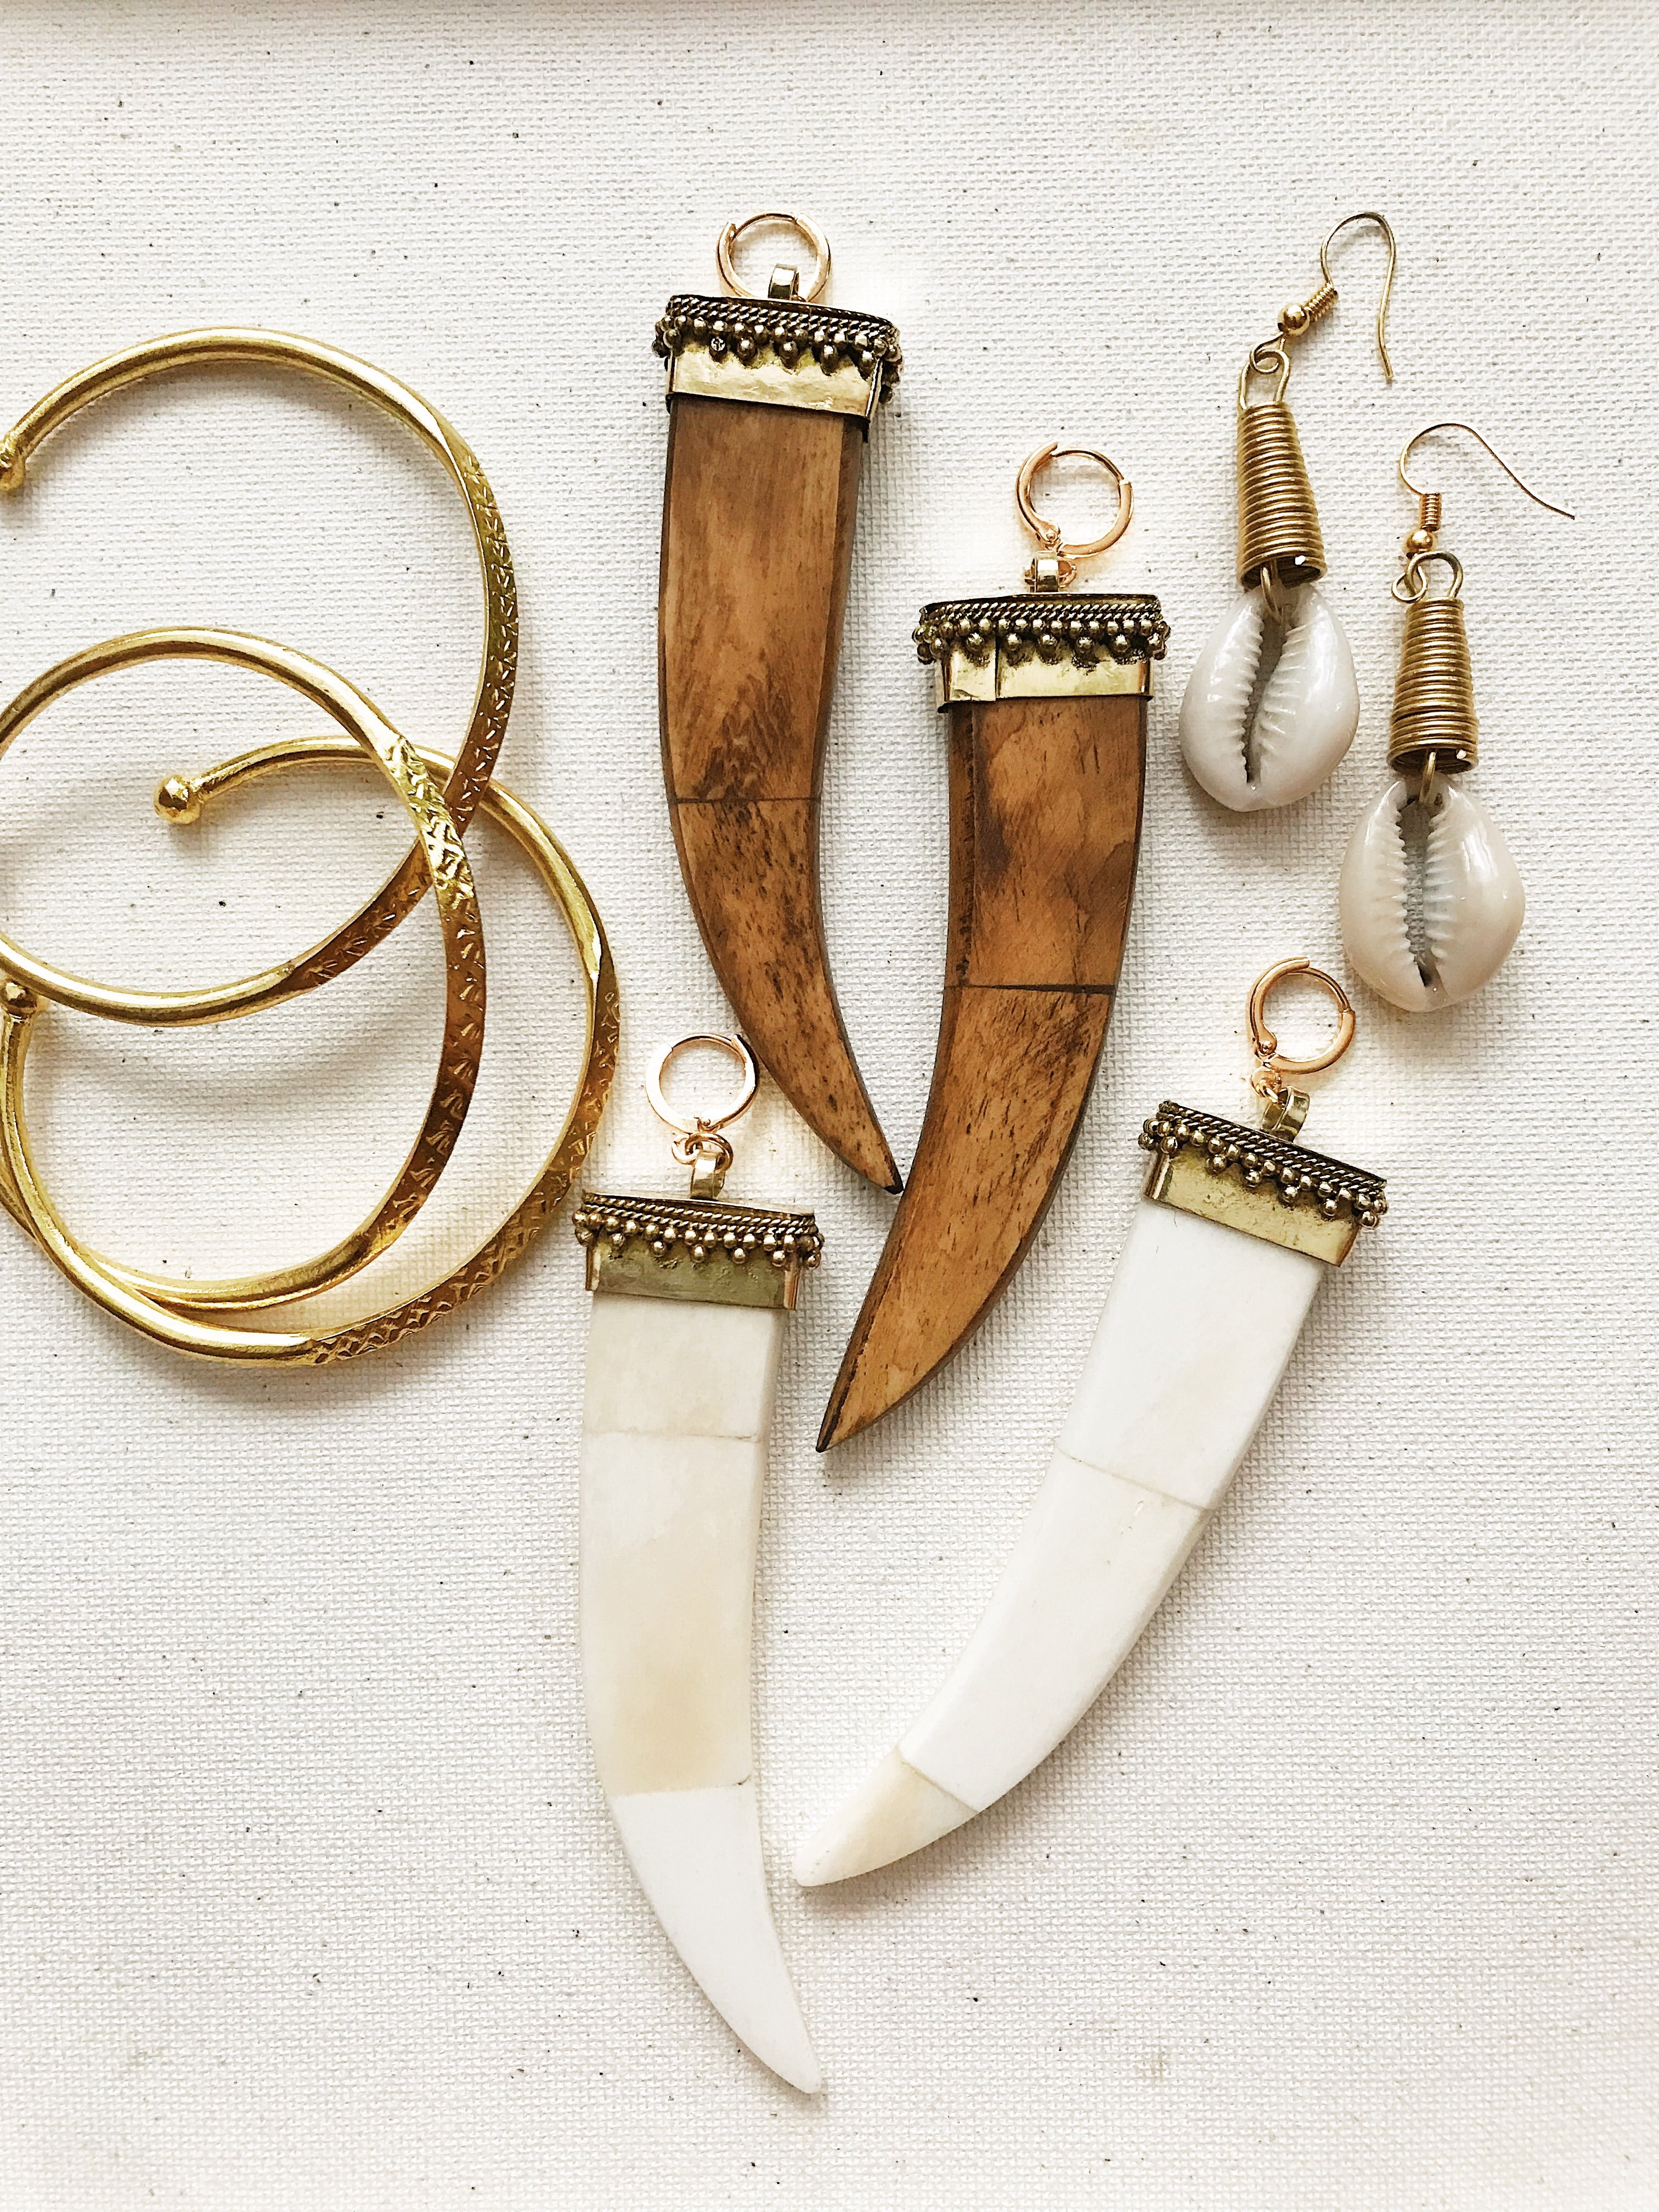 Wild Woman Tusk Earrings